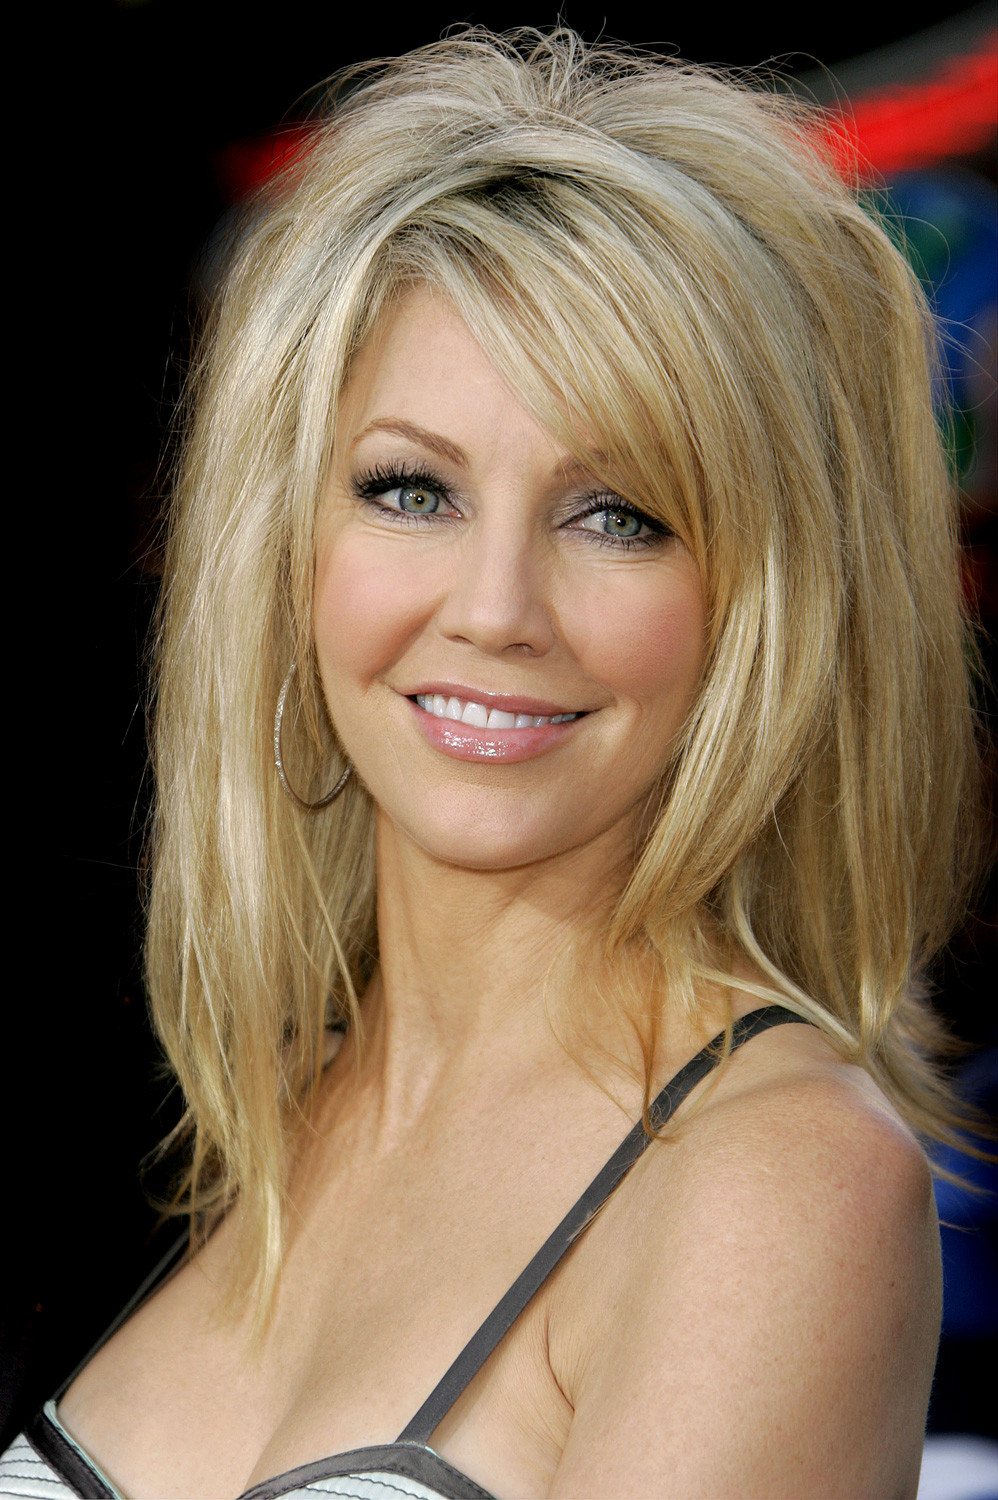 Image - Heather Locklear.jpg | King of the Hill Wiki